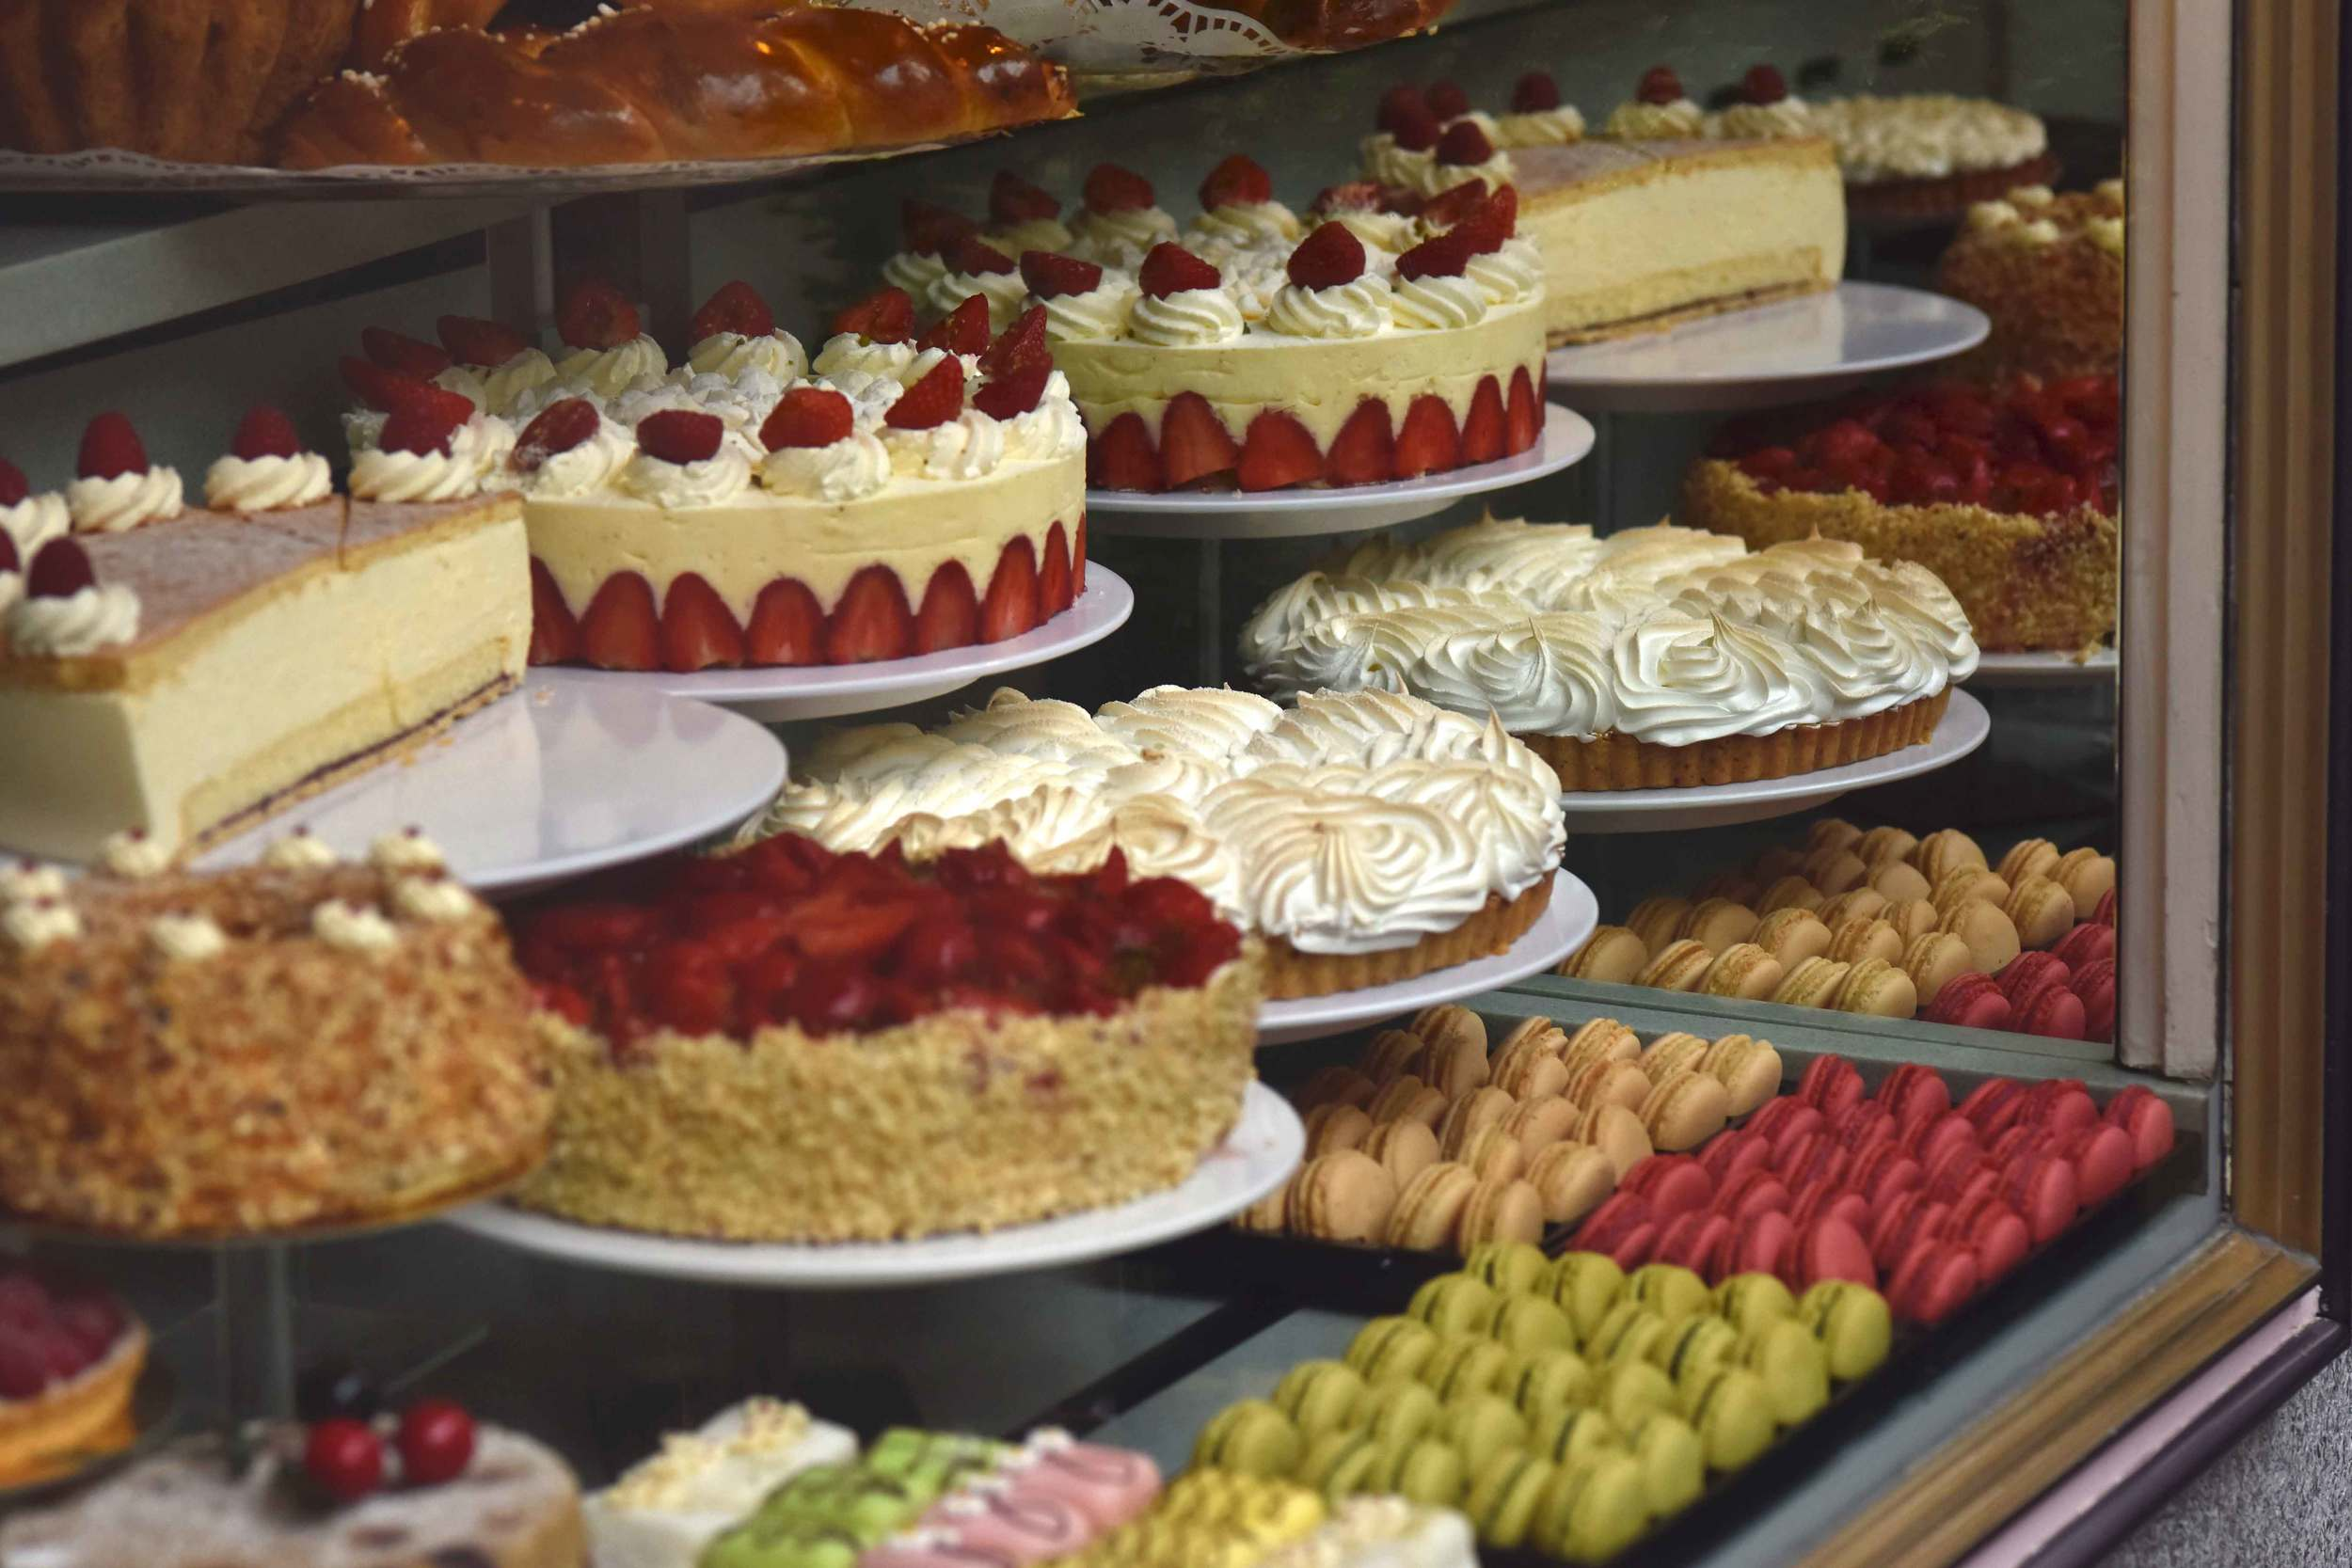 Cakes, pastries, tarts, display window of Cafe König, Baden Baden, Germany. Image©sourcingstyle.com